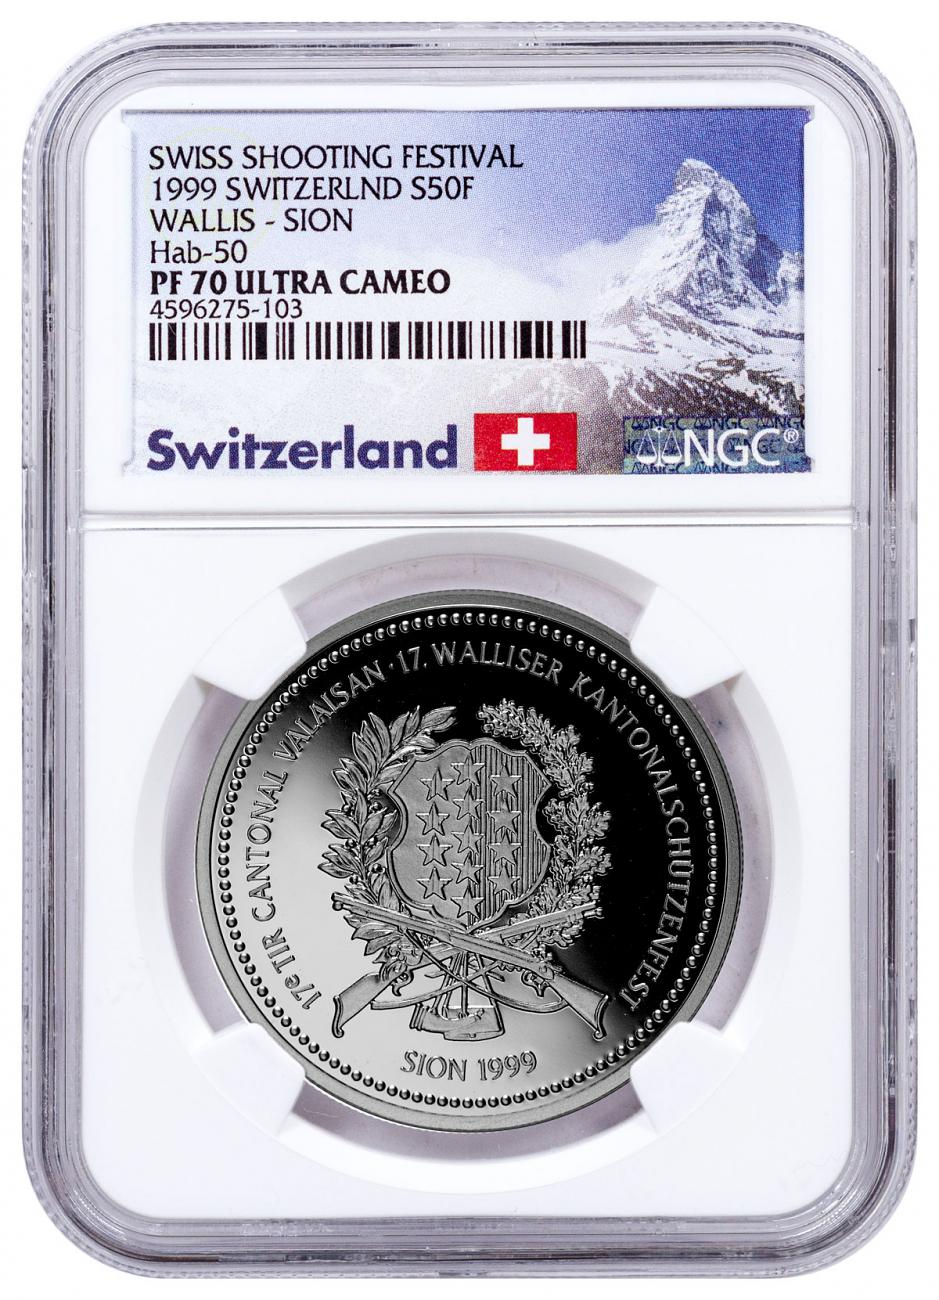 1999 Switzerland Shooting Festival Thaler - Sion Silver Proof Fr.50 Coin NGC PF70 UC Exclusive Switzerland Label